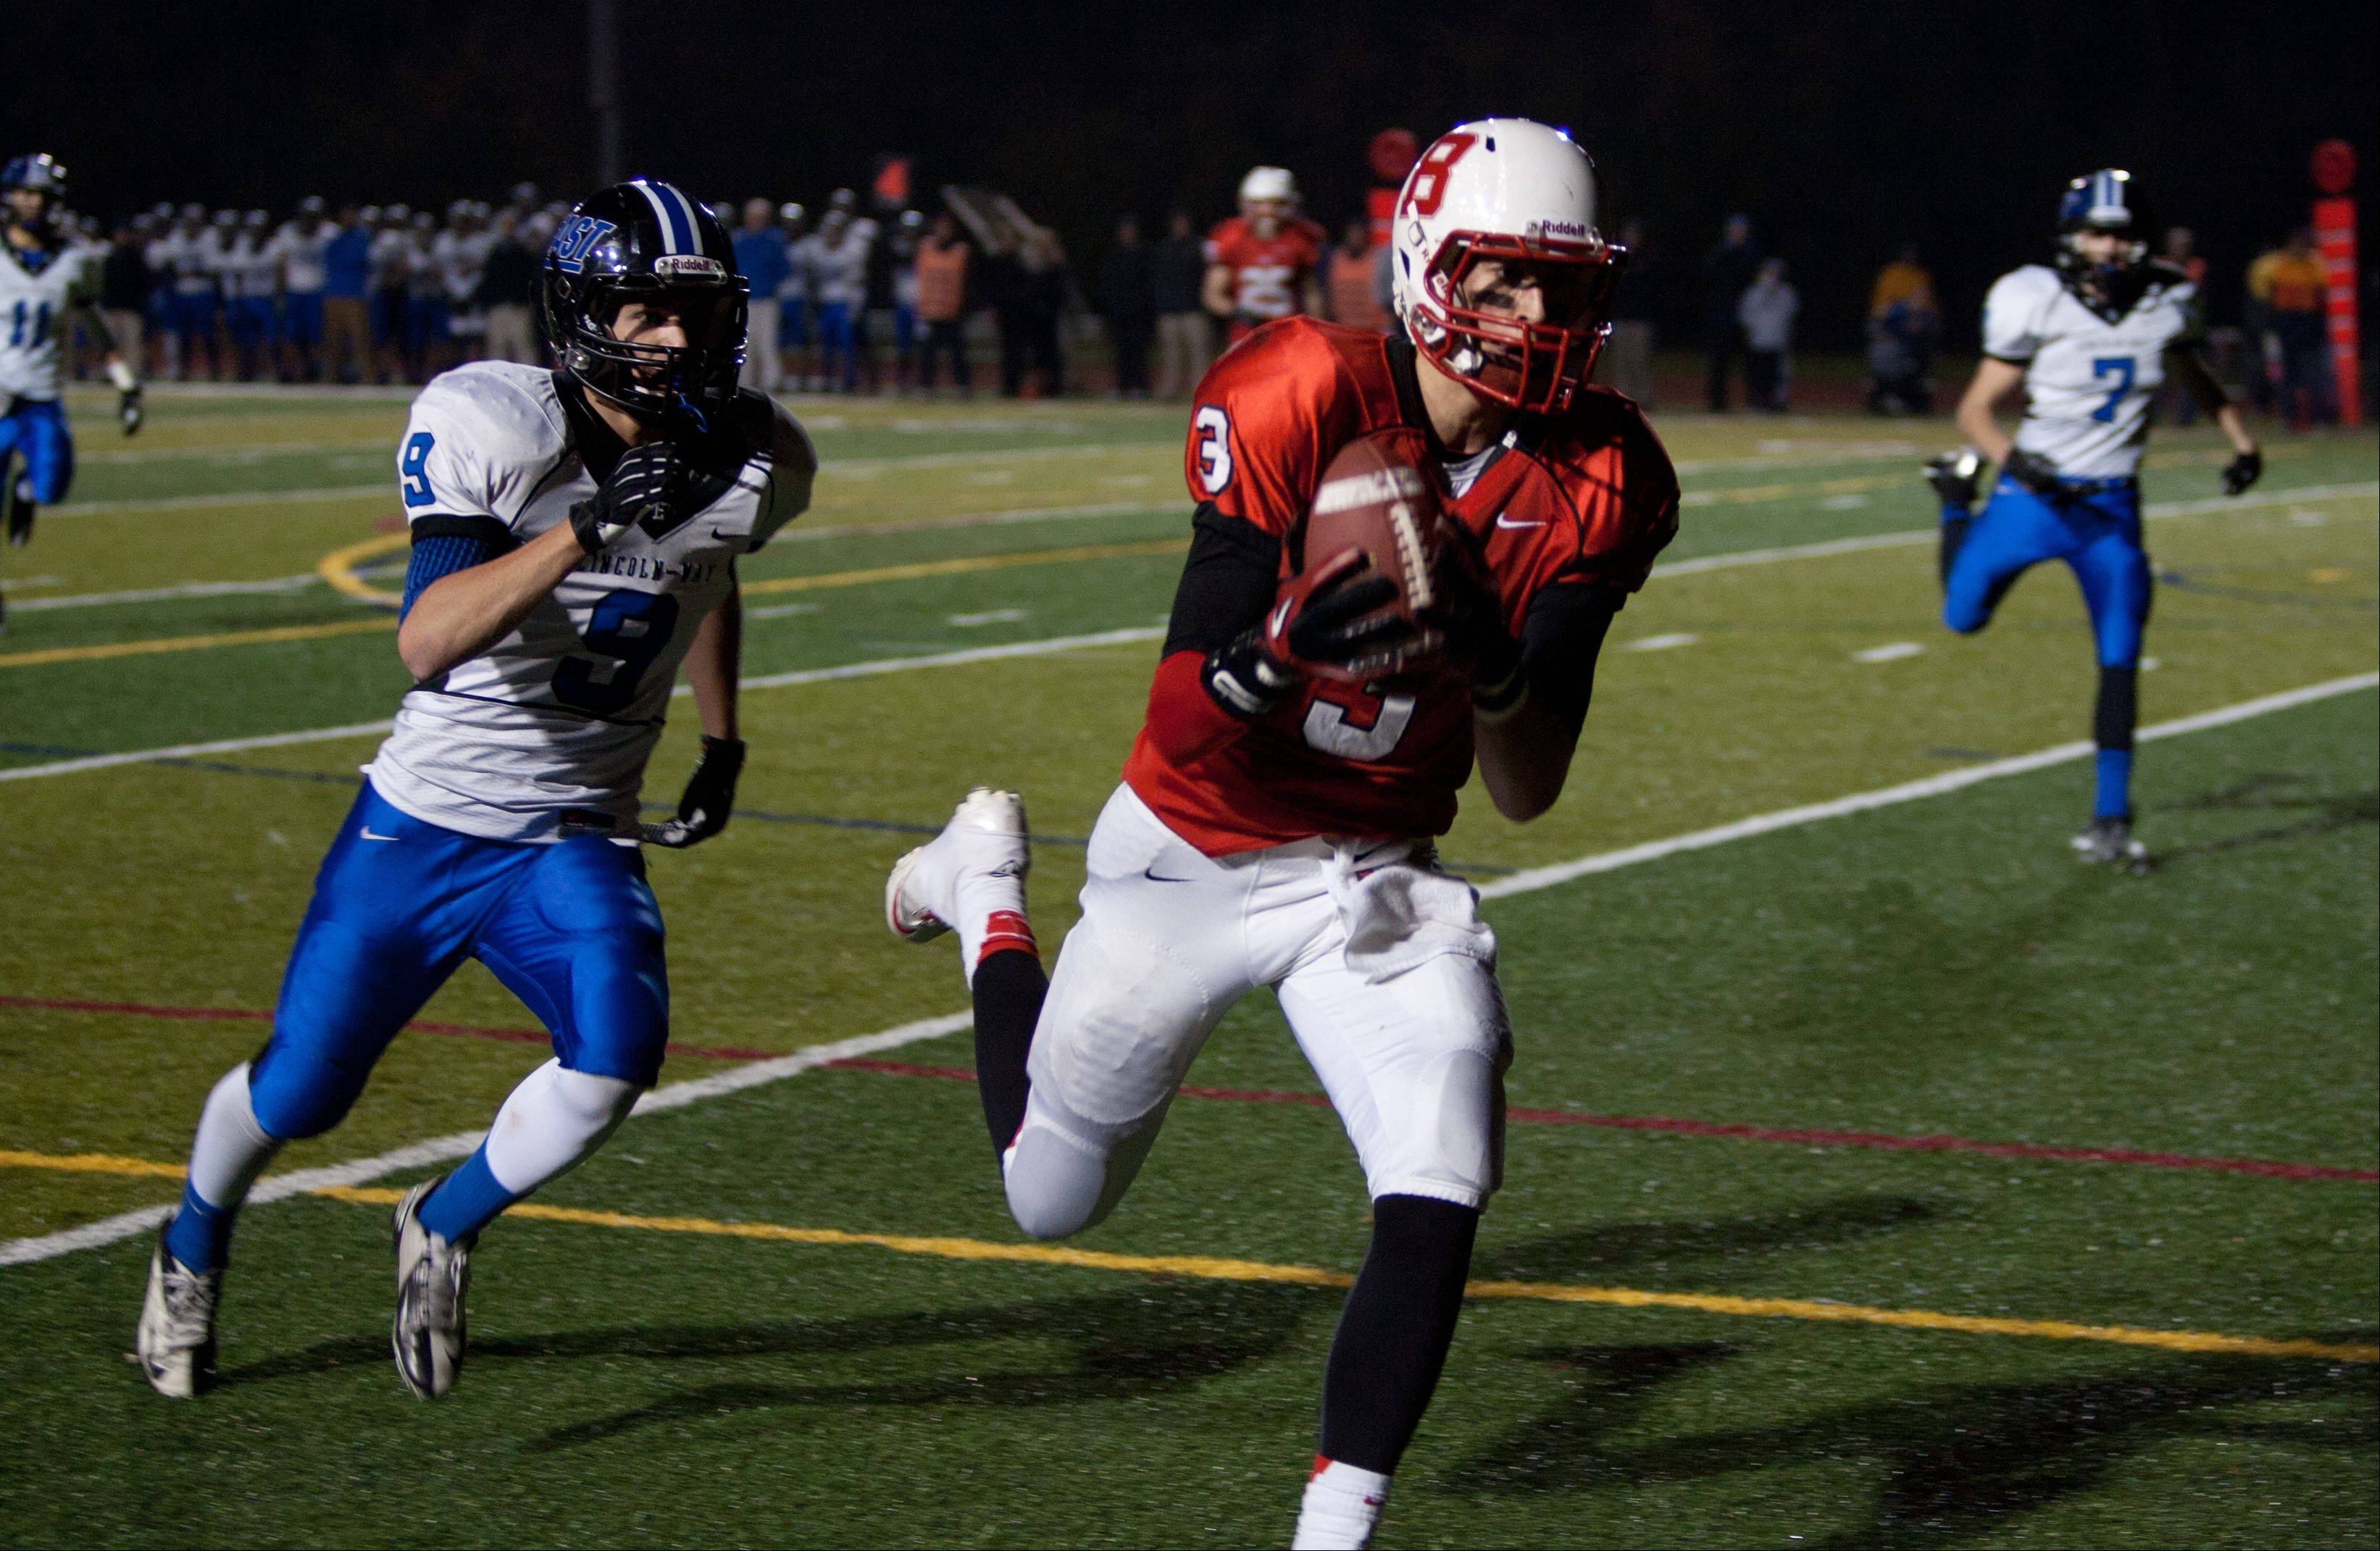 Benet's Jack Euritt (3), hauls down a fourth down, fourth quarter touchdown pass against Lincoln-Way East.